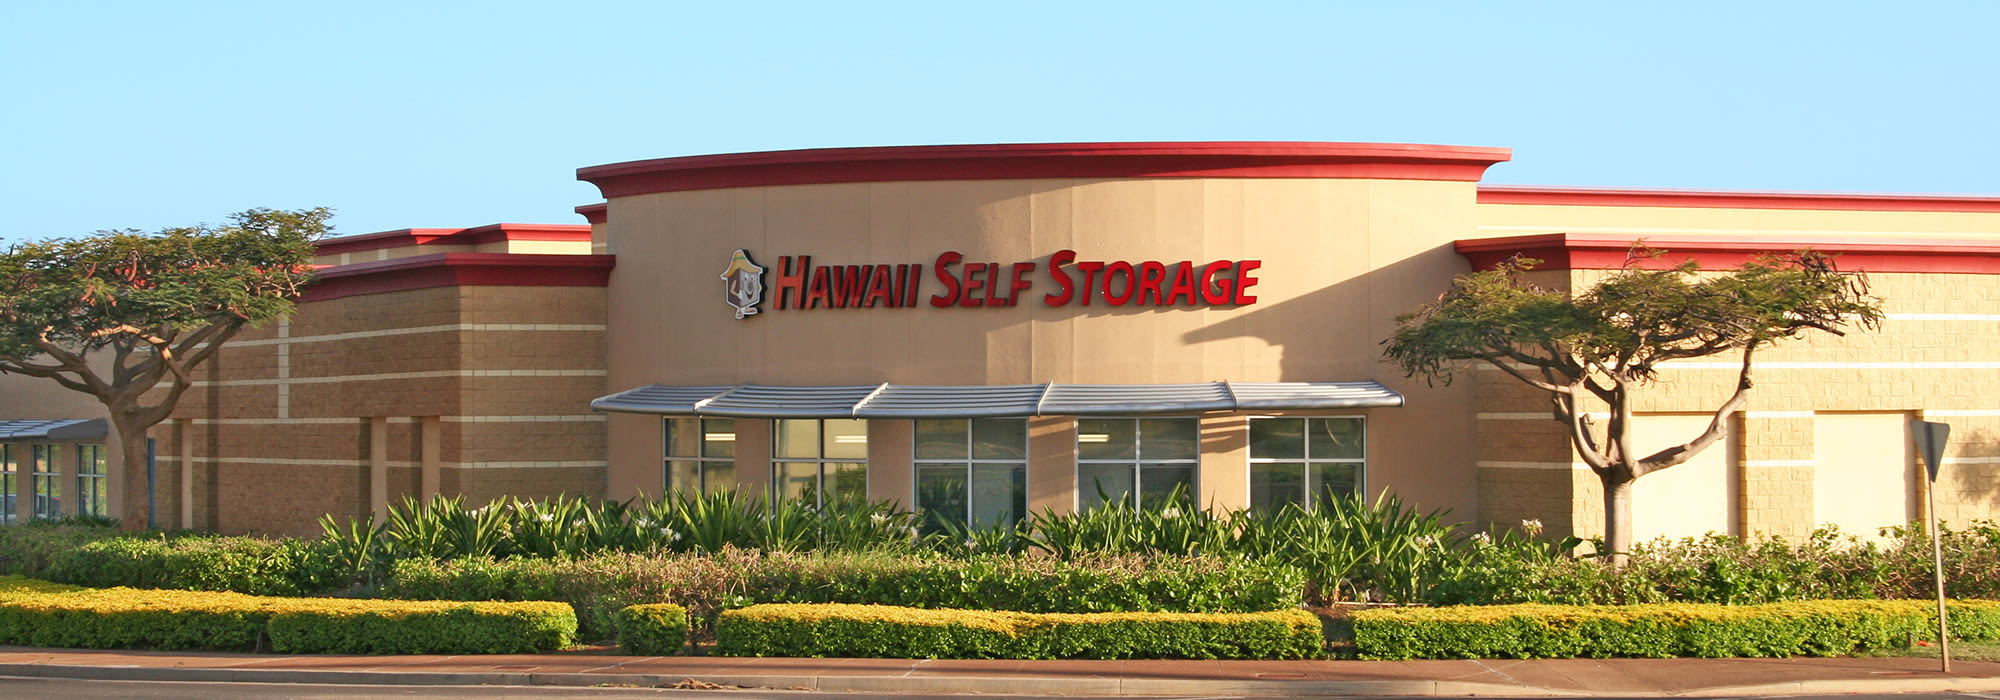 Self storage in Kapolei HI